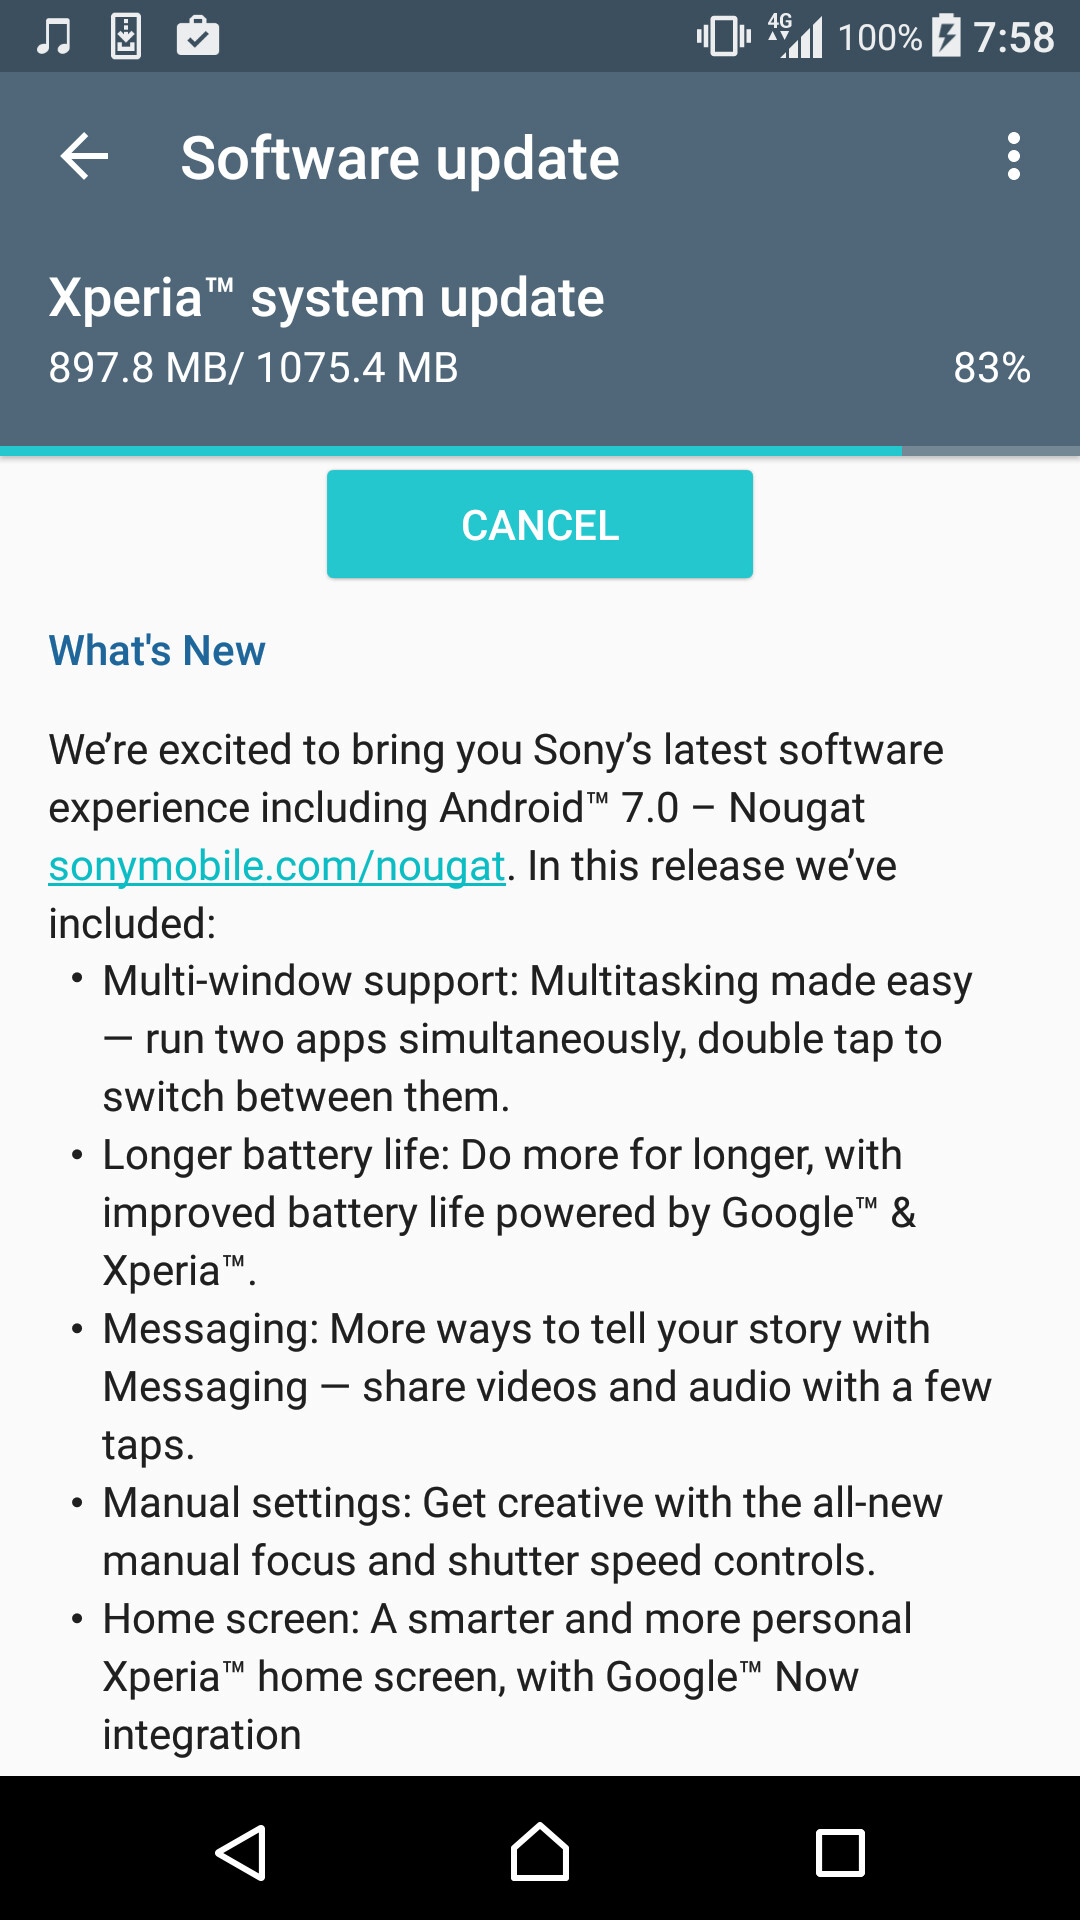 Sony Xperia XZ also getting Android 7 Nougat right now! - PhoneArena